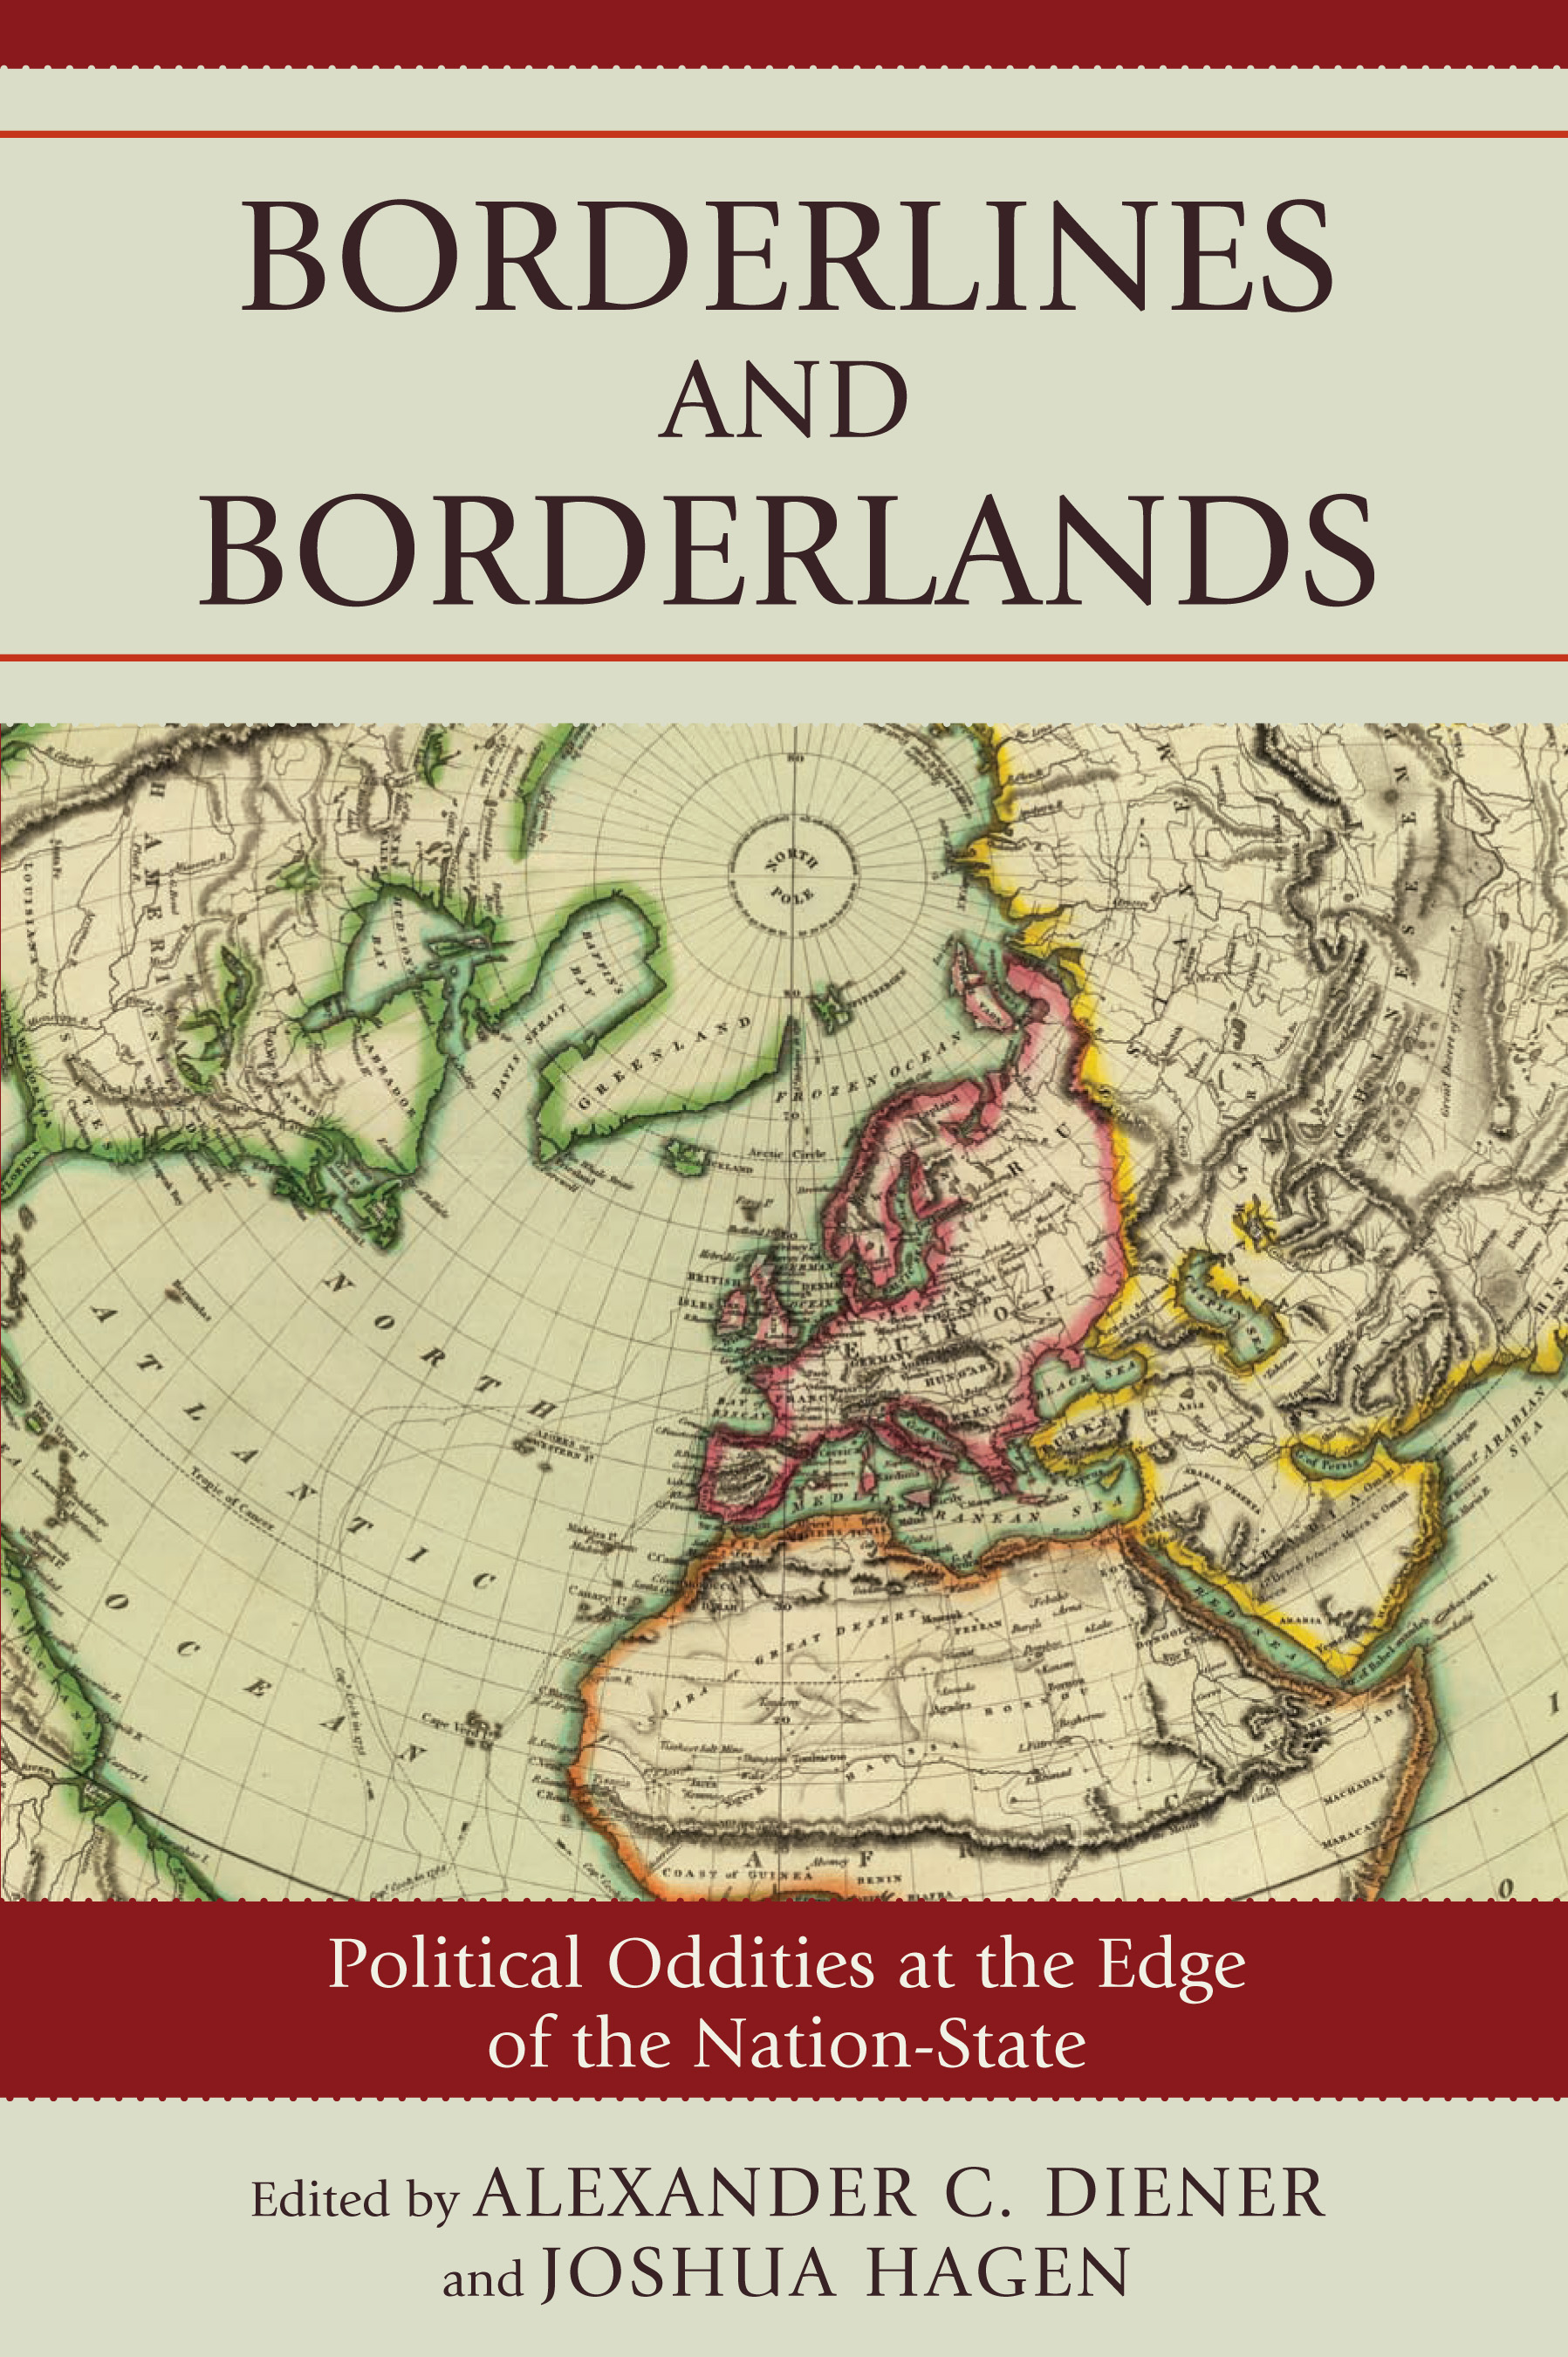 Borderlines and Borderlands